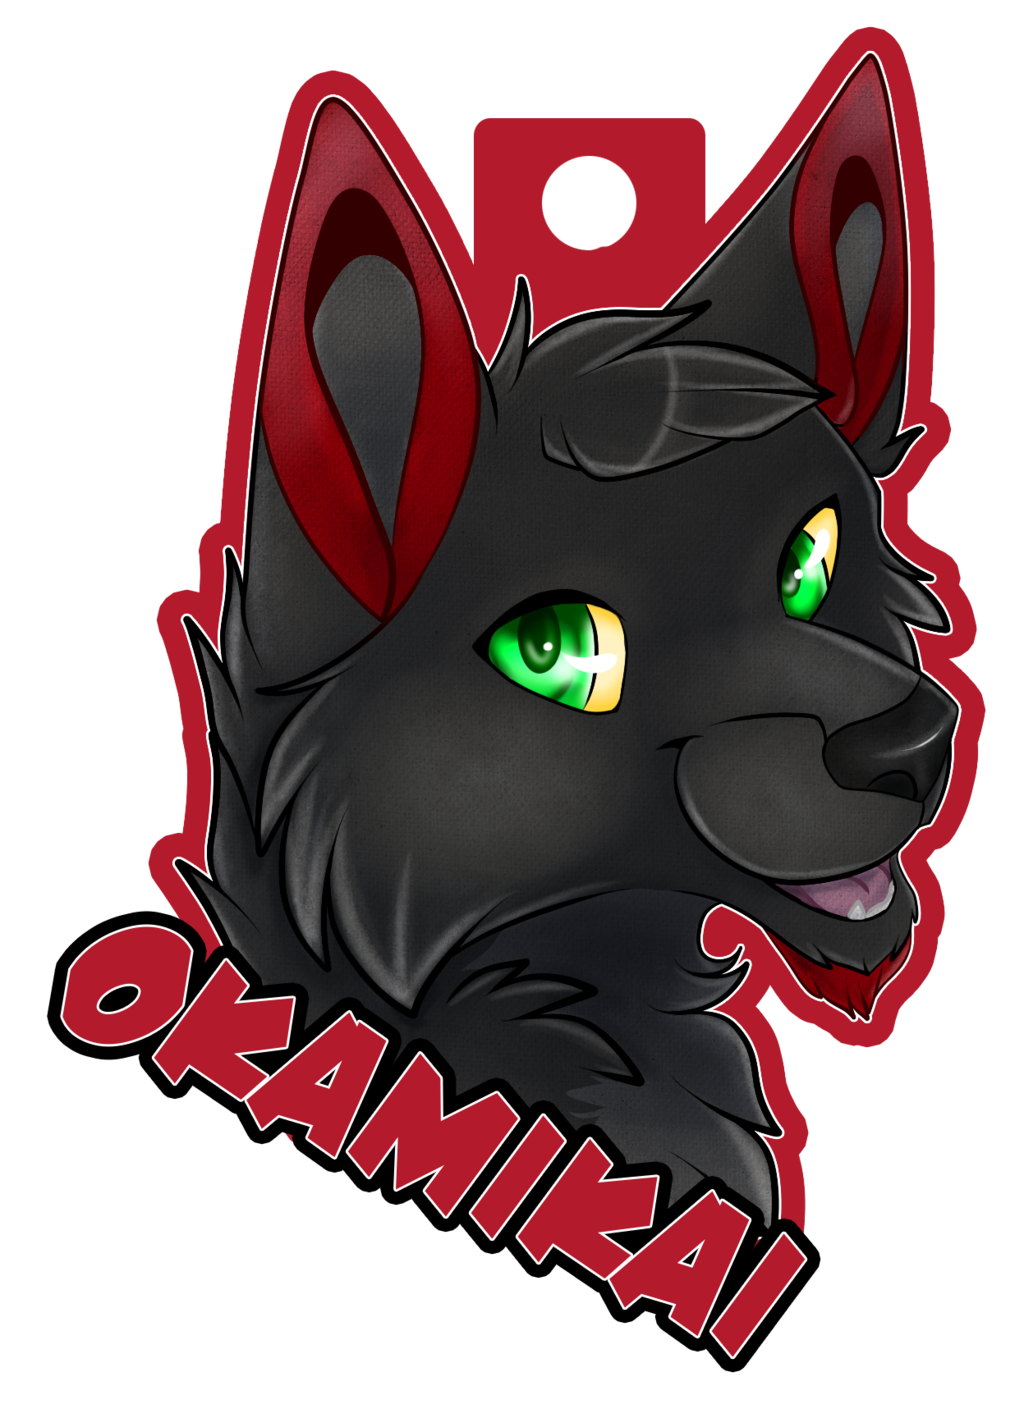 Most recent image: Badge by Sneechee